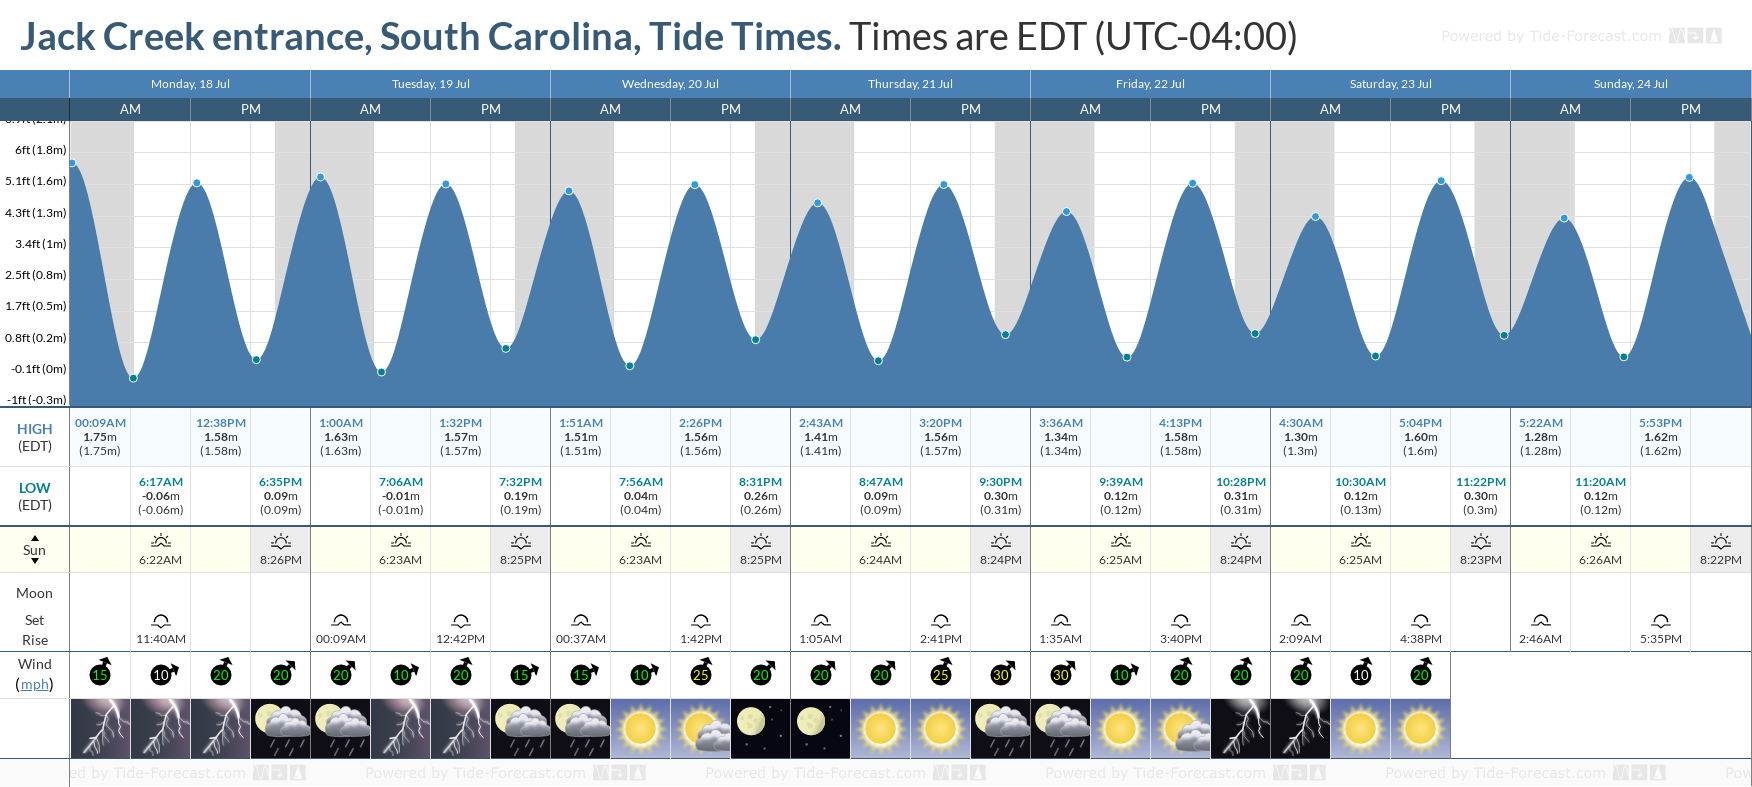 Jack Creek entrance, South Carolina Tide Chart including high and low tide tide times for the next 7 days